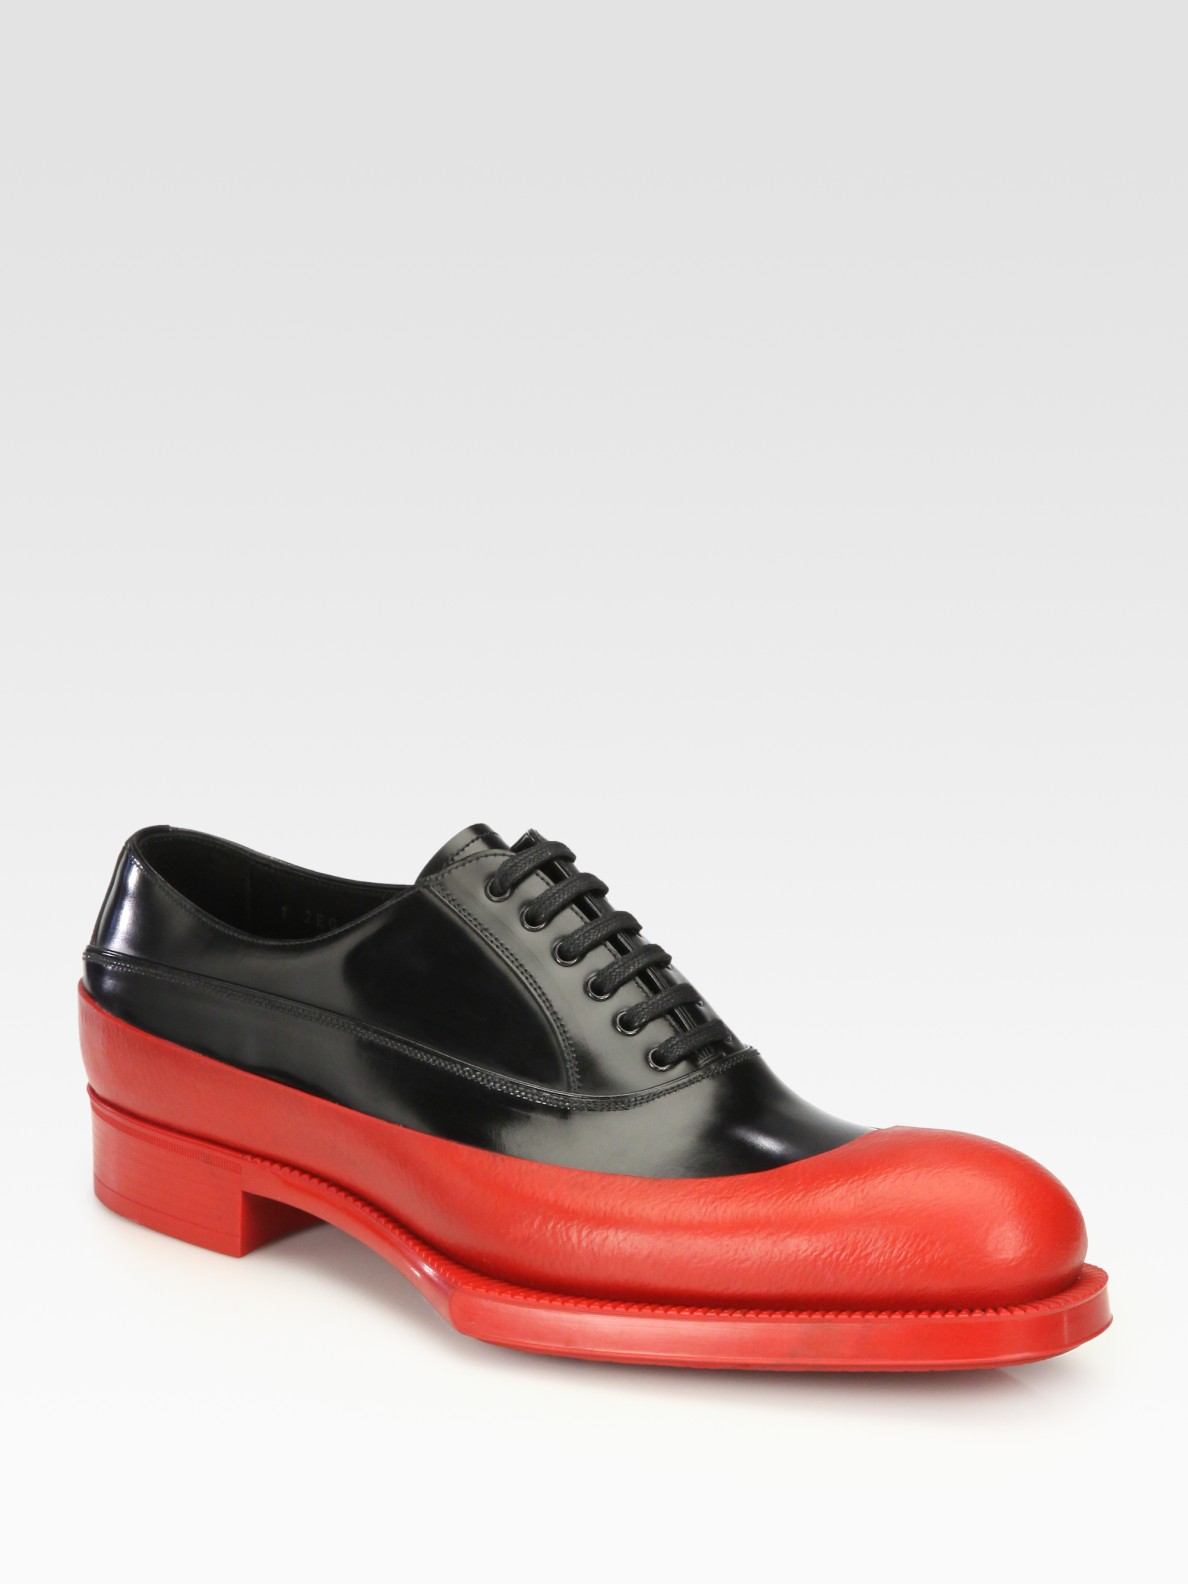 various colors 70979 fca73 prada-nero-rubber-dipped-laceup-product-1-3928317-515108324.jpeg